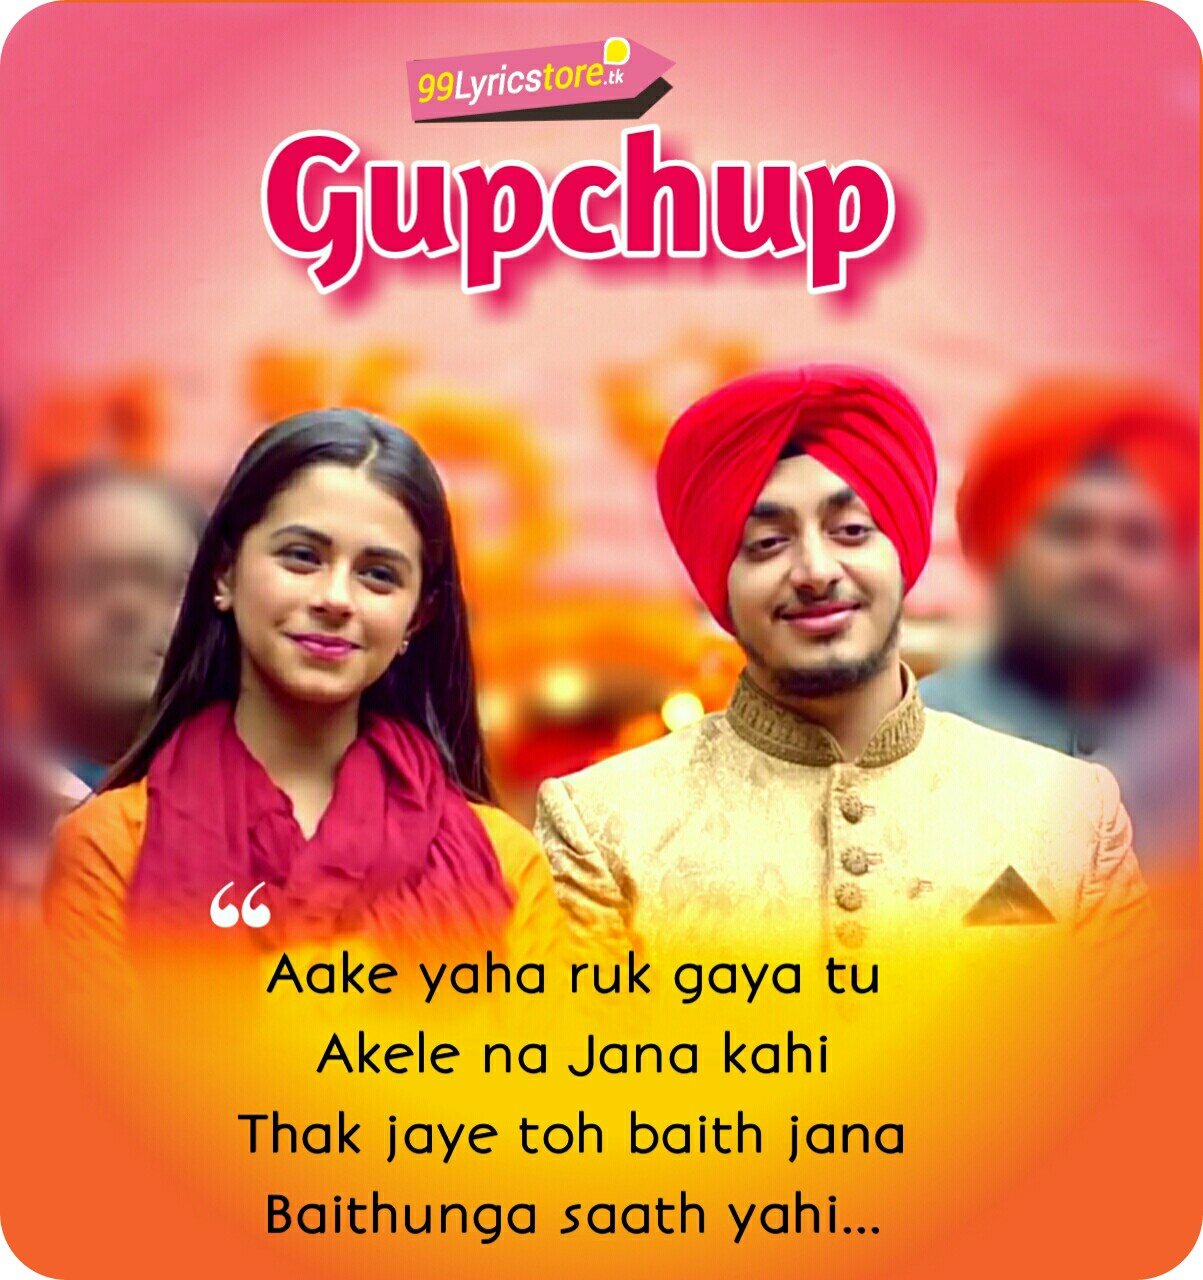 Jaspreet Juneja Song Lyrics, Jaspreet Juneja Song, Jaspreet Juneja Song 2018, Rits Badiani Song Lyrics, Rits Badiani Song images, Gupchup Song Lyrics, Gupchup Song images, Love Song Lyrics, Love Song Quotes